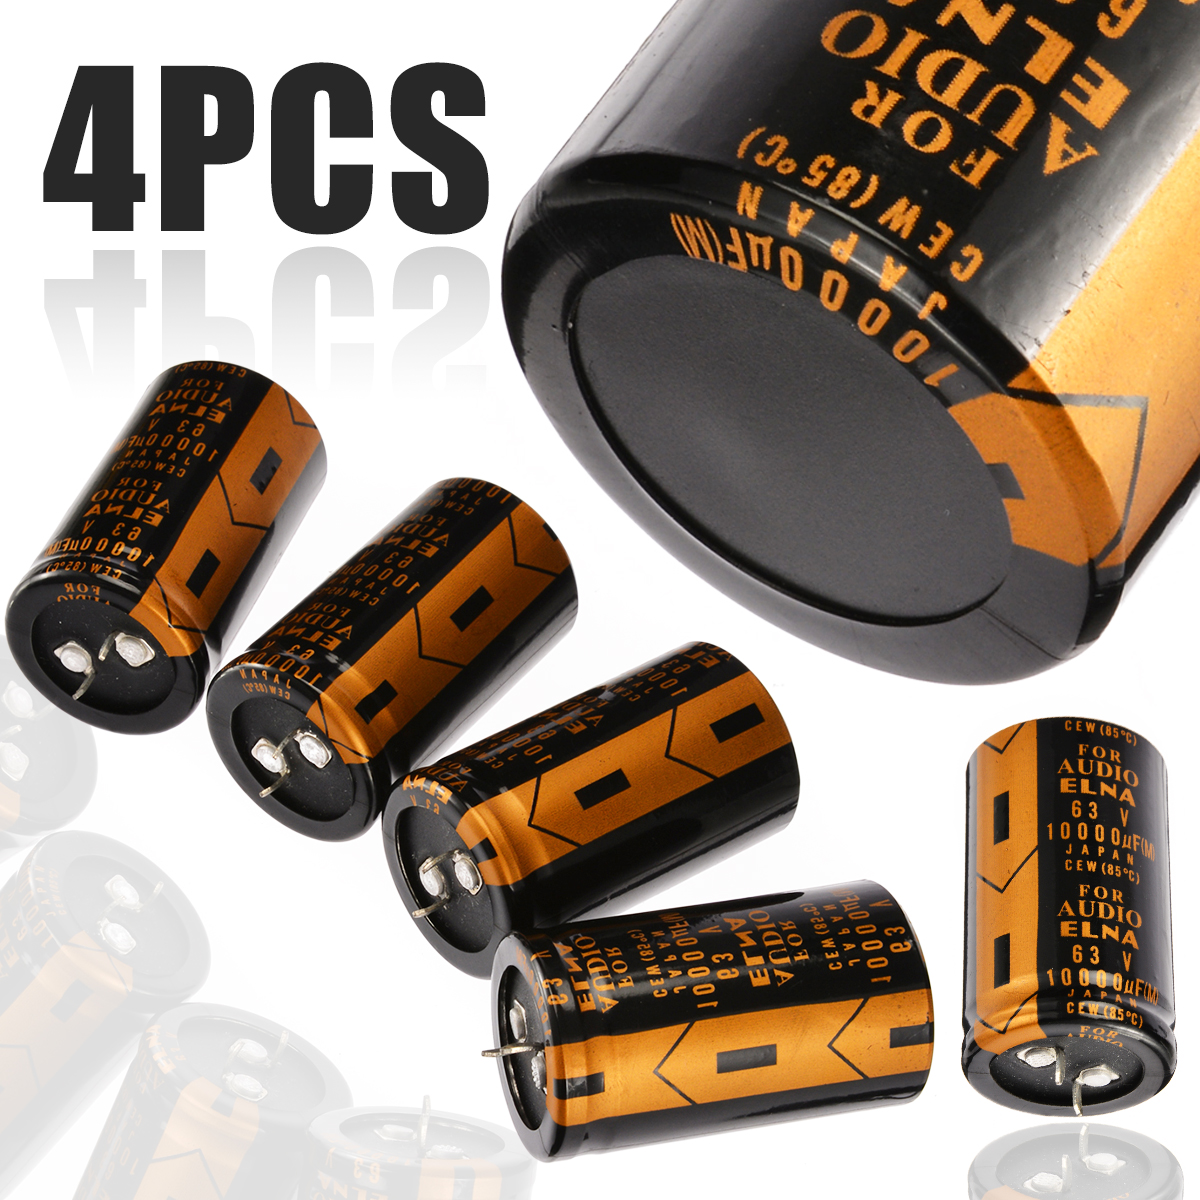 4PCS NICHICON 35V 12000uF KG GOLD TUNE Audio Electrolytic Capacitor 2019